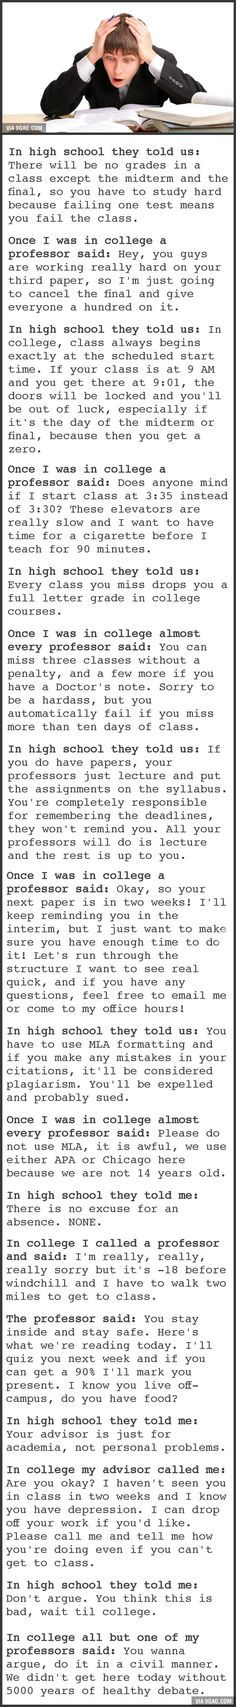 Essays Papers College As Explained To Me In High School Vs College As Experienced  High School Graduation Essay also Yellow Wallpaper Essays Best  High School Vs College Ideas On Pinterest  College  Science Essays